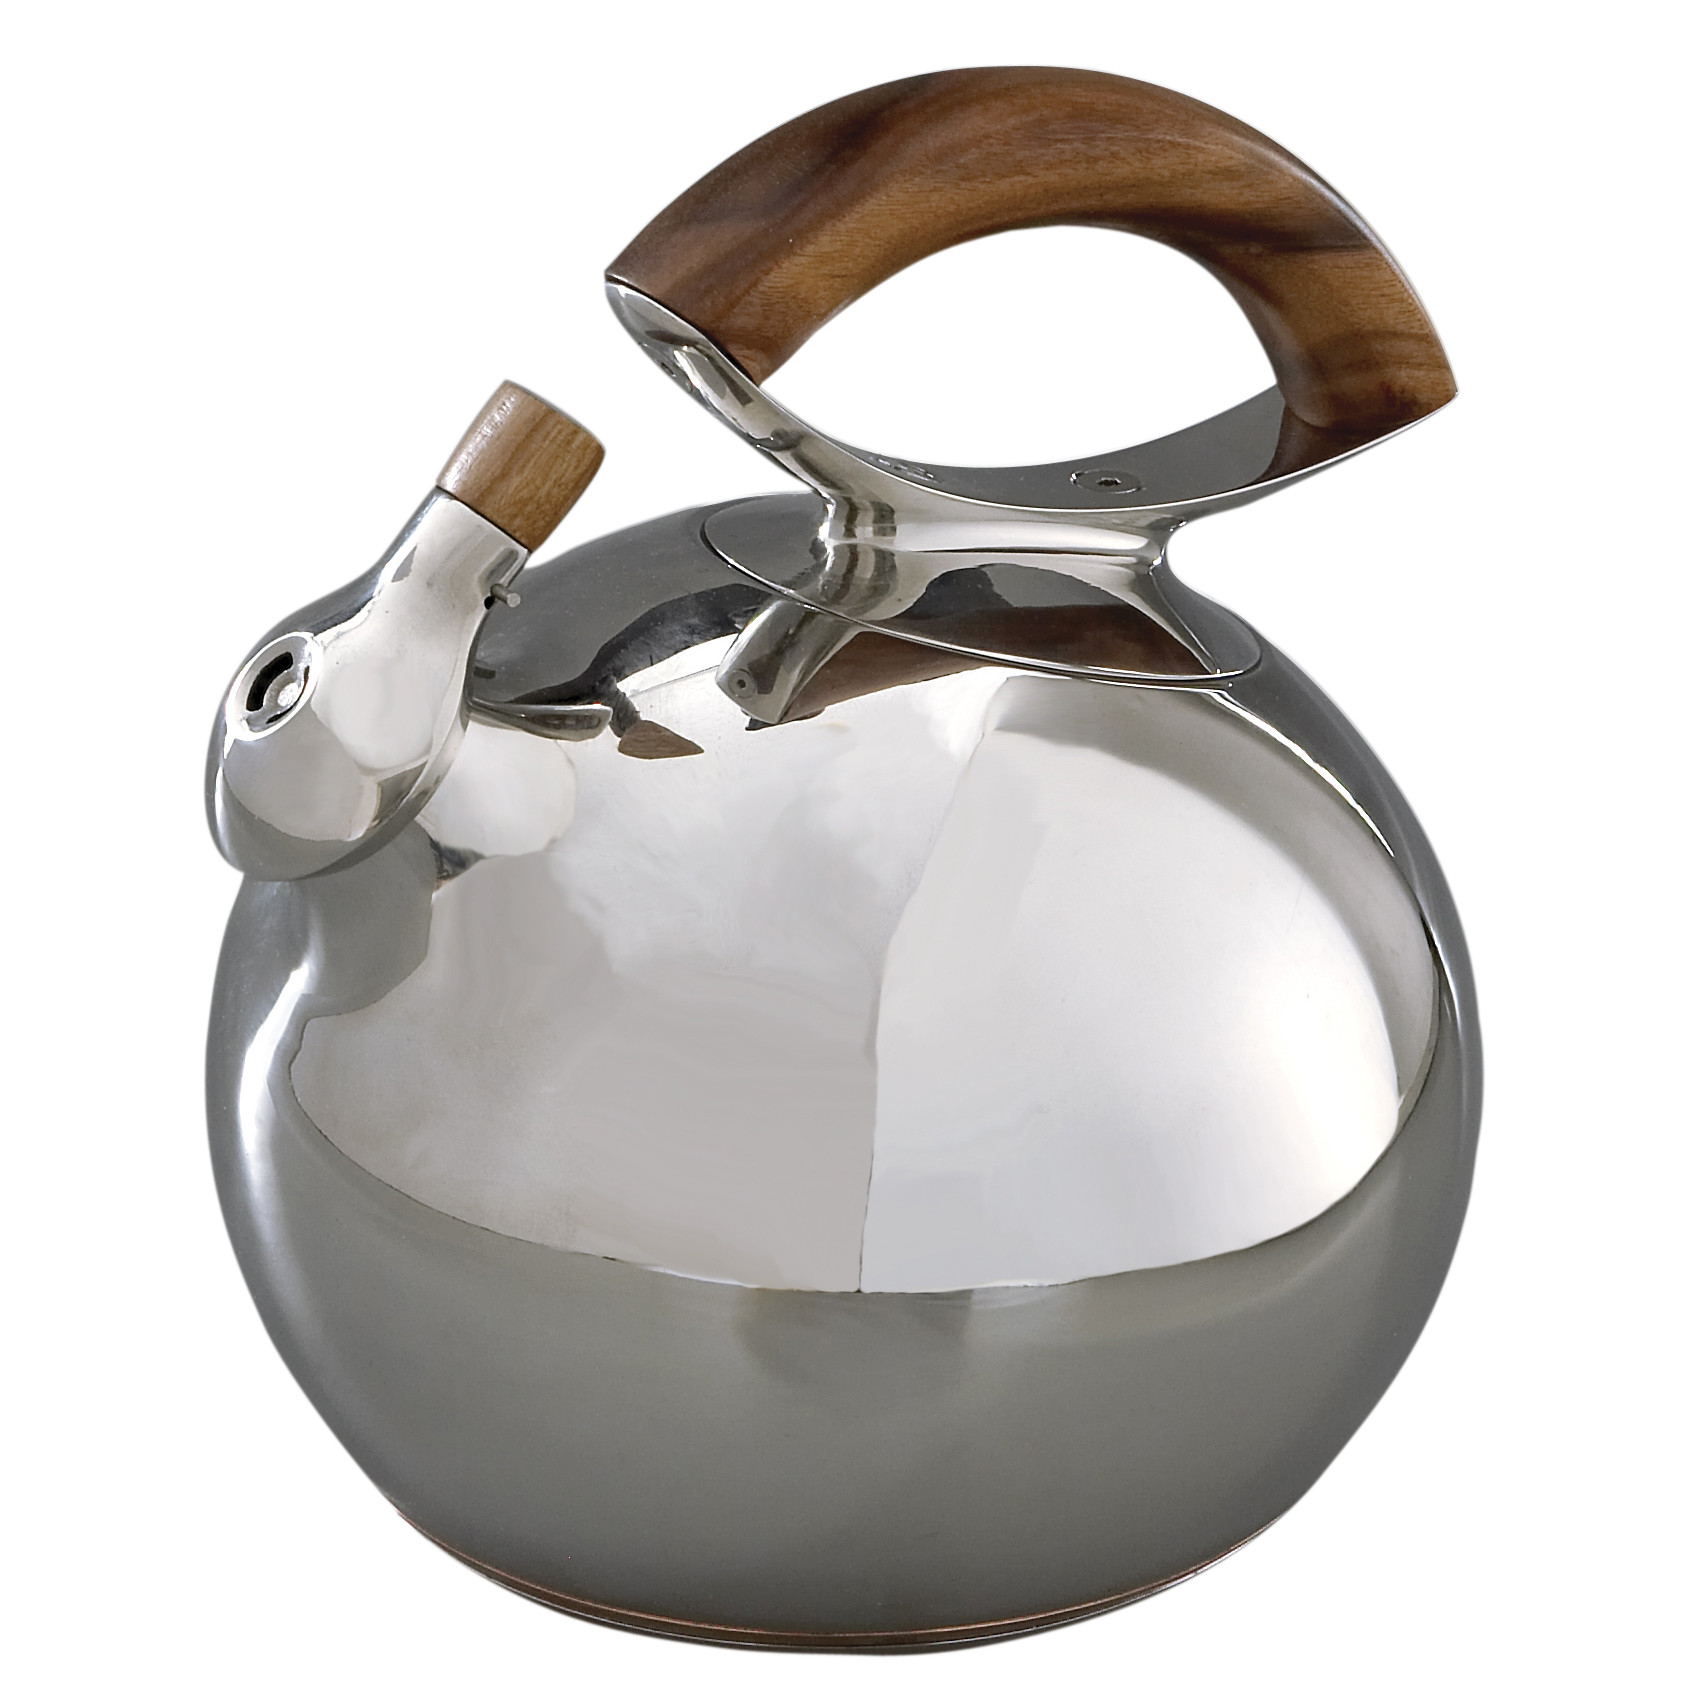 Inspiring tea kettles for kitchen and dining room with copper tea kettle